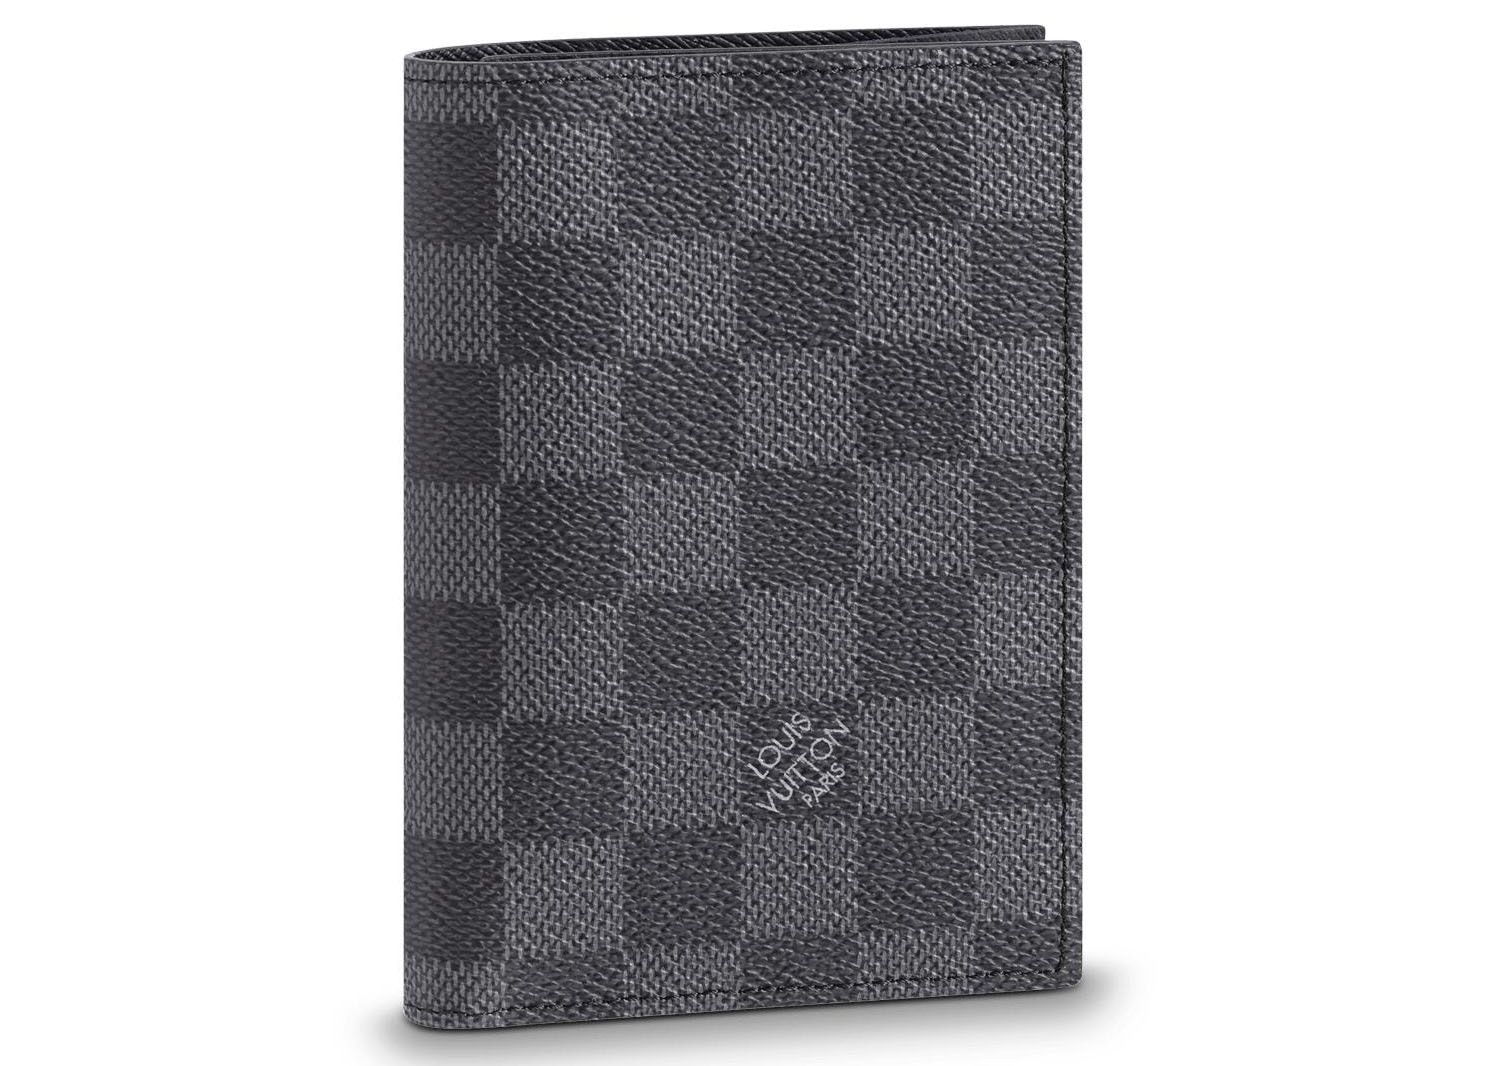 Louis Vuitton Passport Cover Damier Graphite Black/Gray